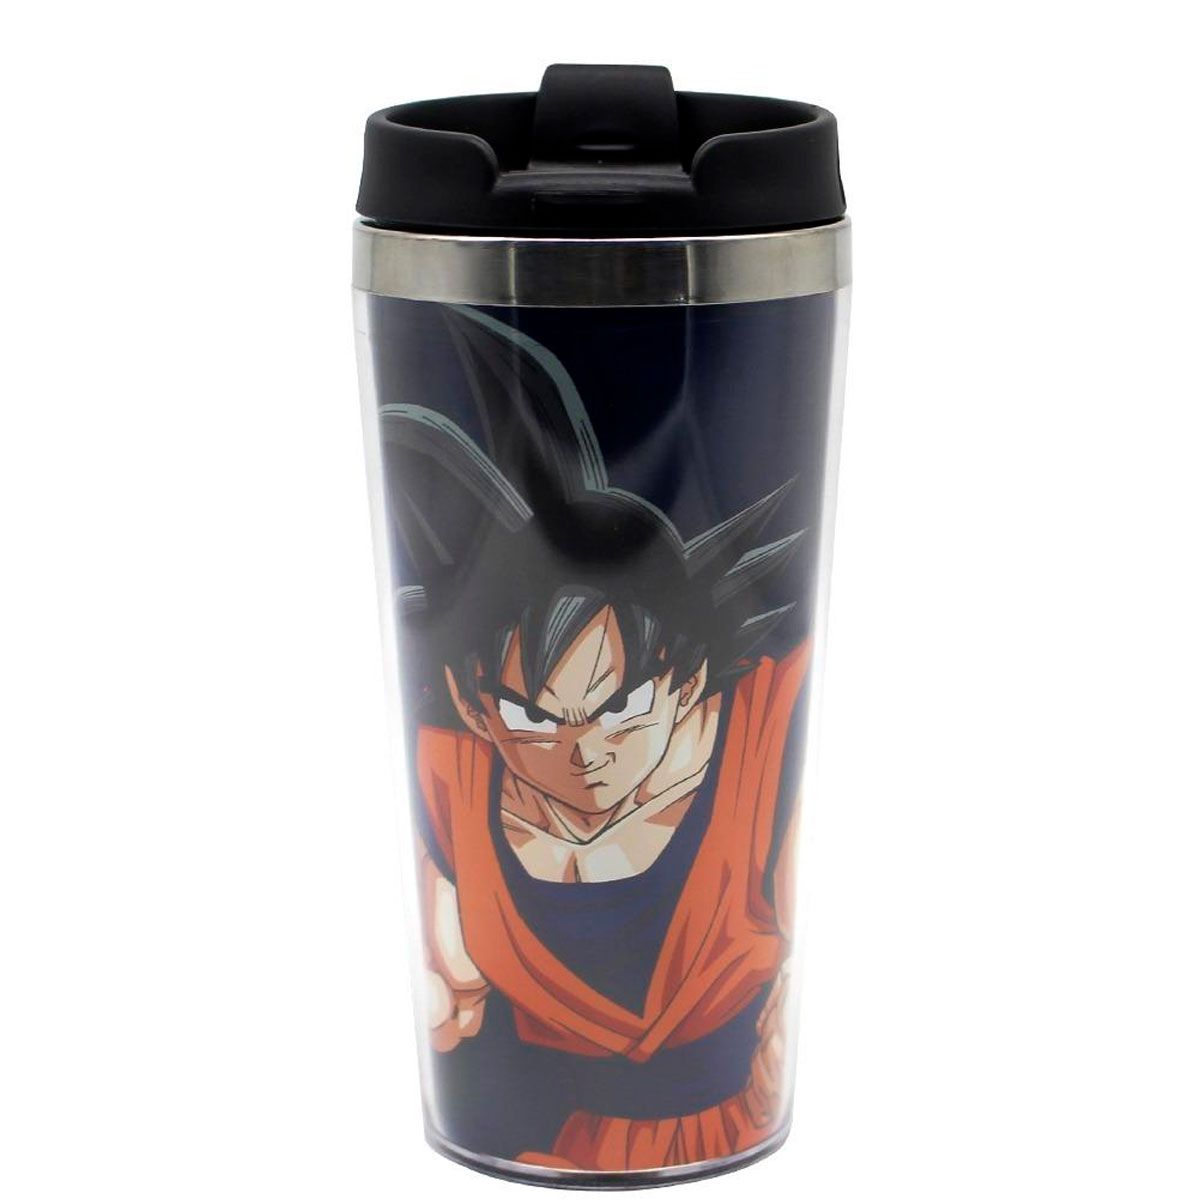 Copo Térmico Goku Dragon Ball Z